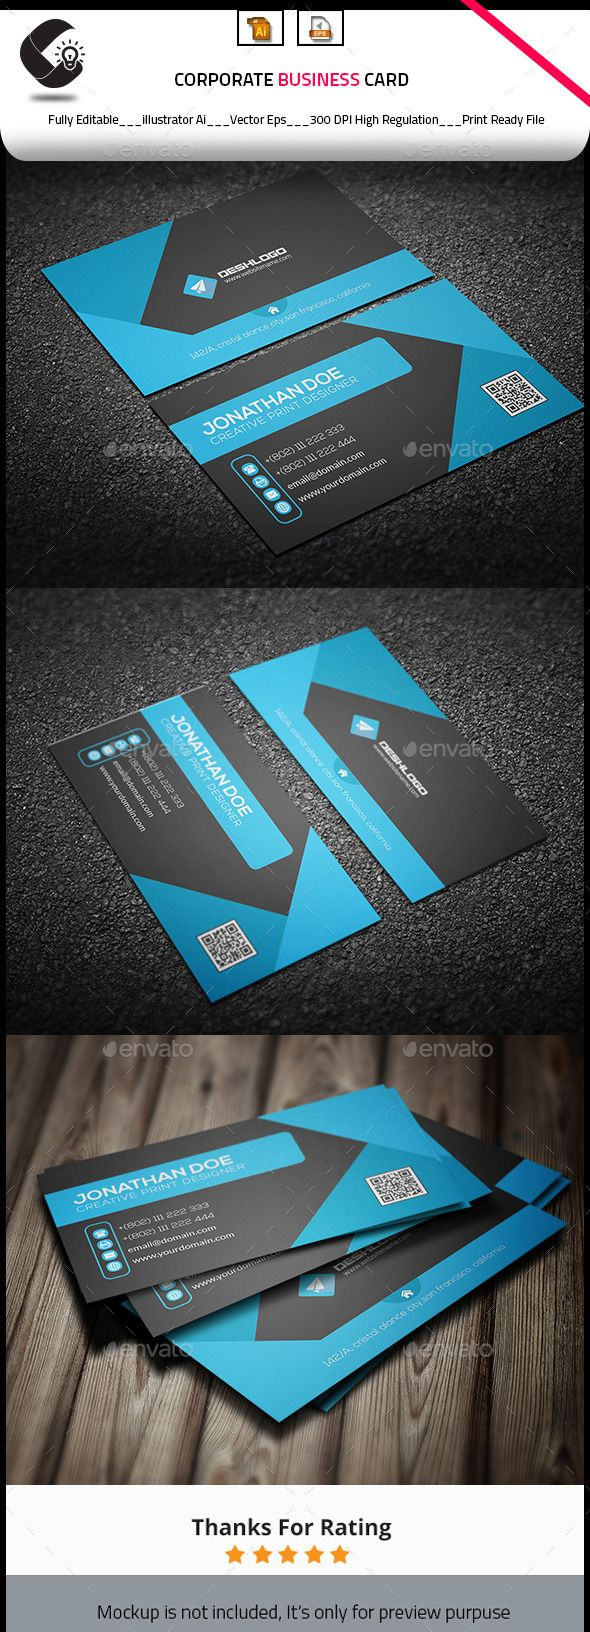 Sms business card image collections free business cards die besten 25 business card size ideen auf pinterest corporate business card magicingreecefo image collections magicingreecefo Images